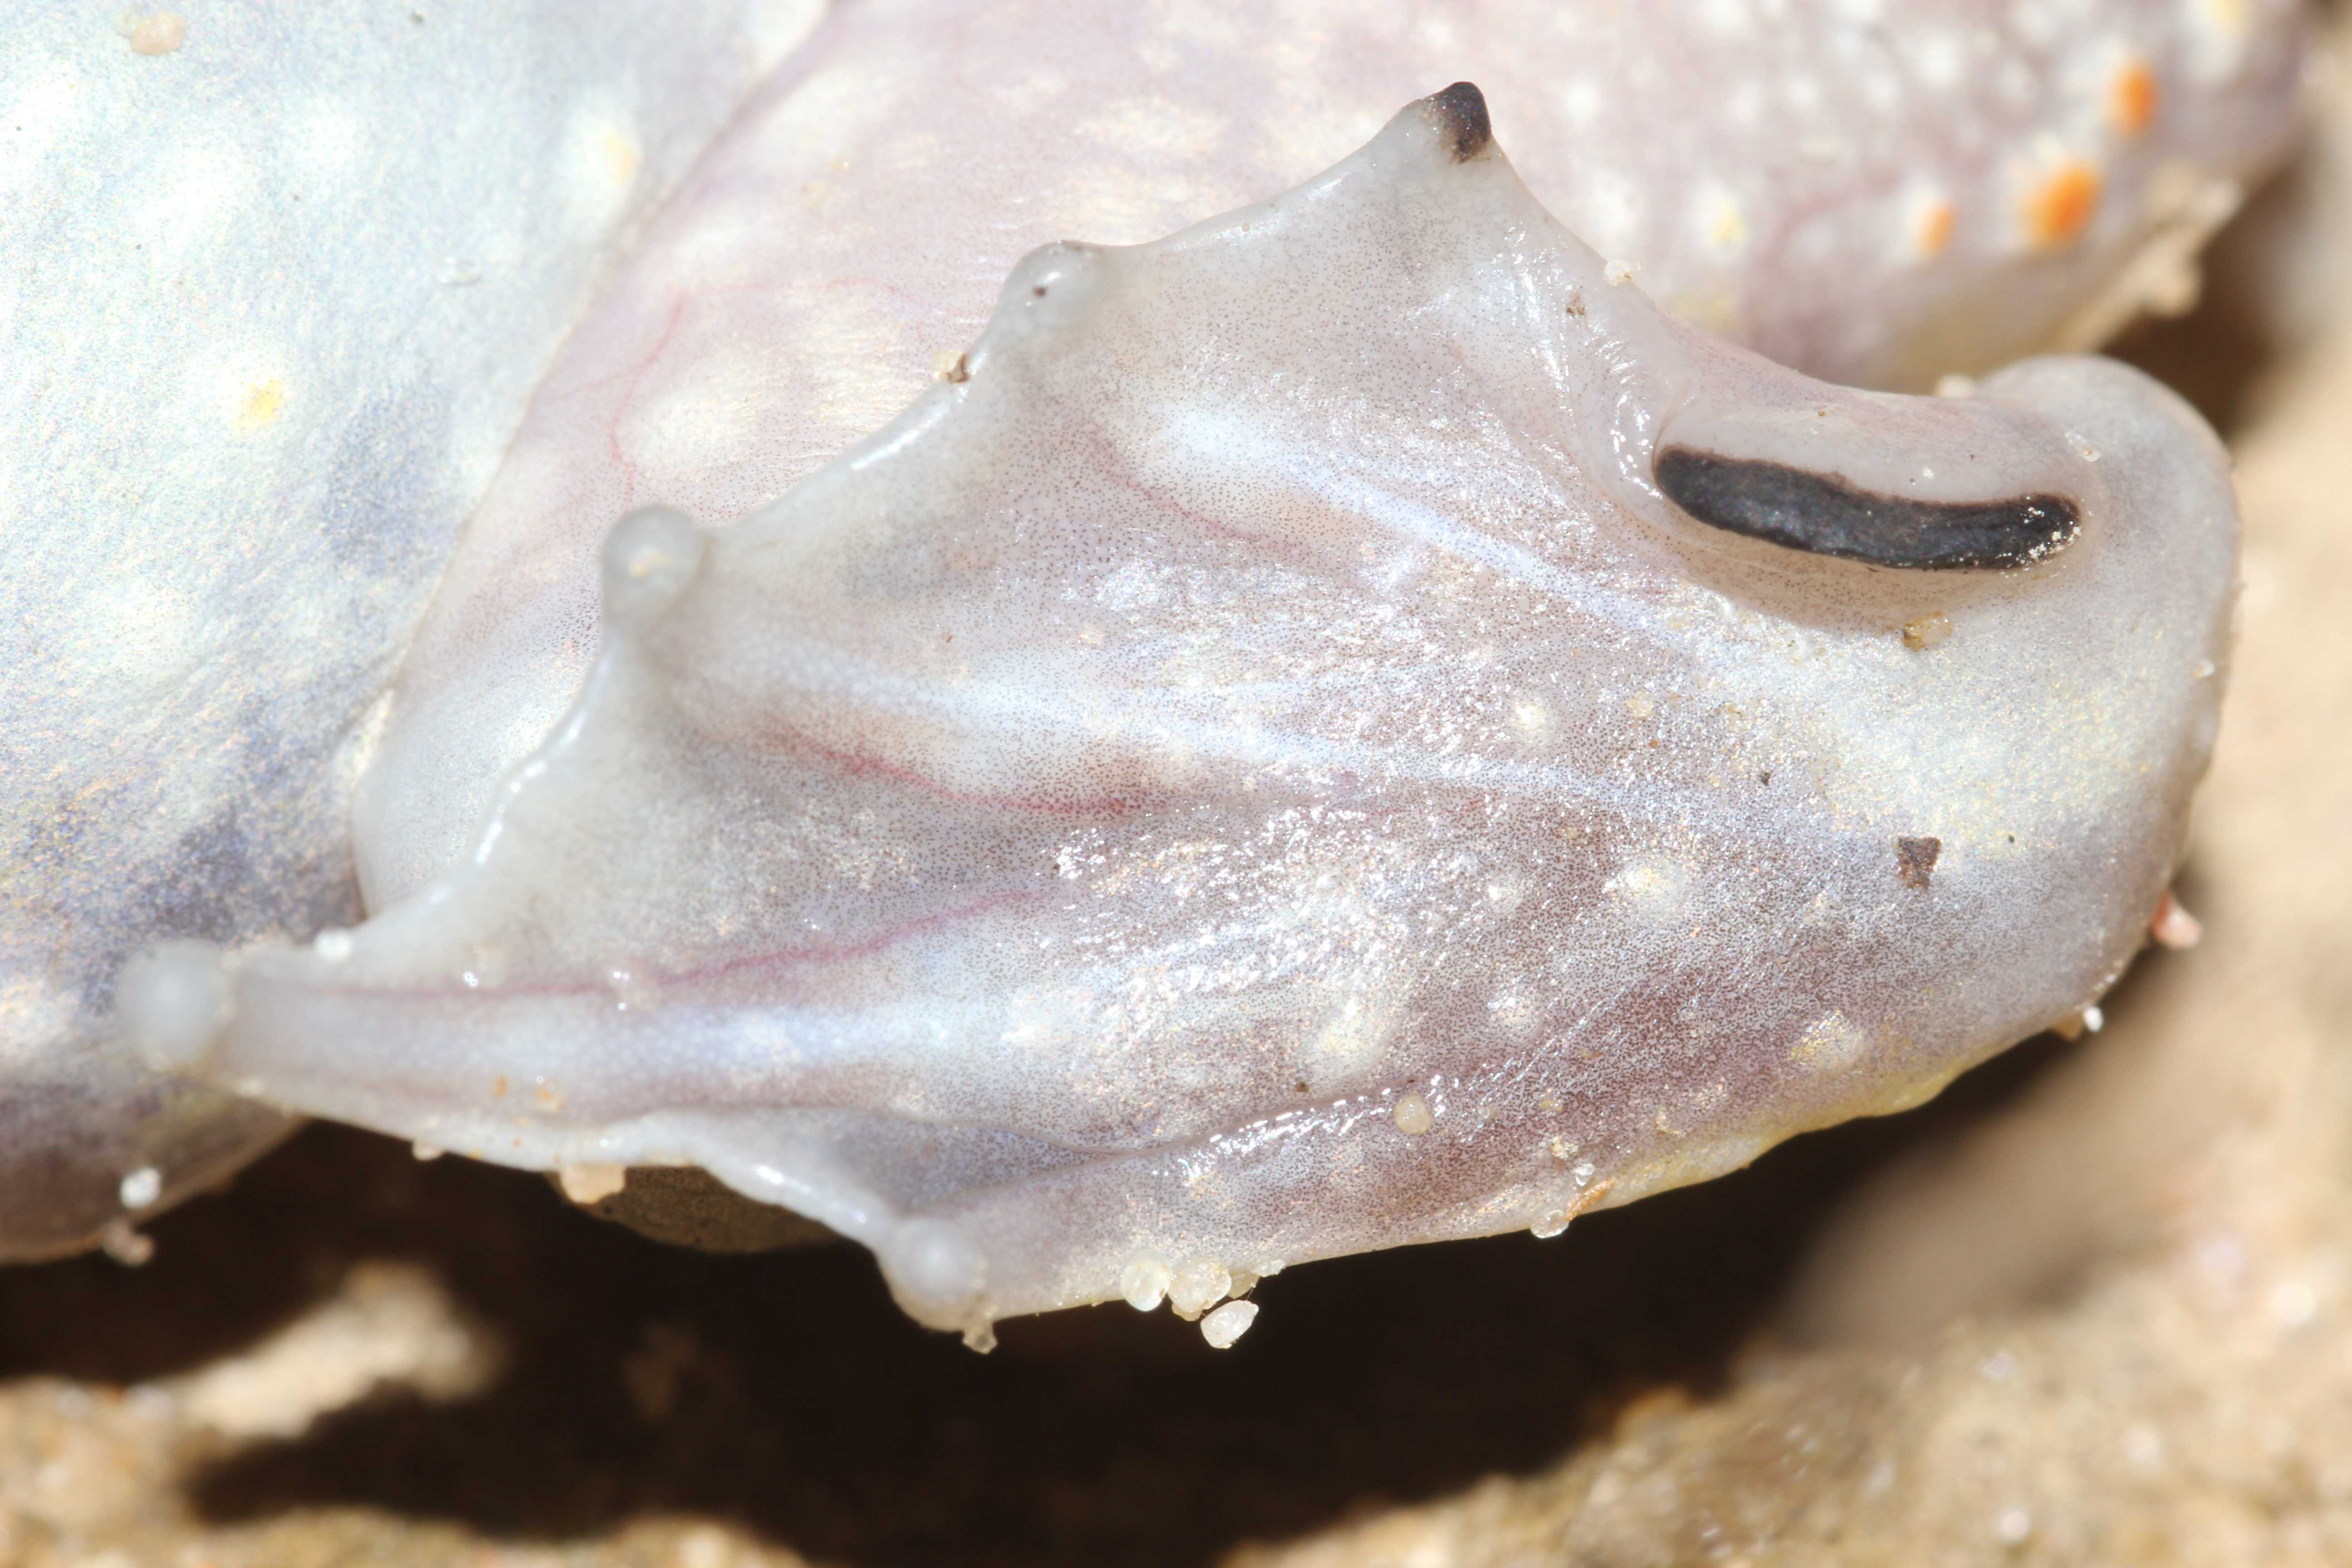 <strong>Source:</strong> USGS National Wetlands Research Center. <strong>Photographer:</strong> Jeromi Hefner. Close Up of Spade; Florida Panhandle.